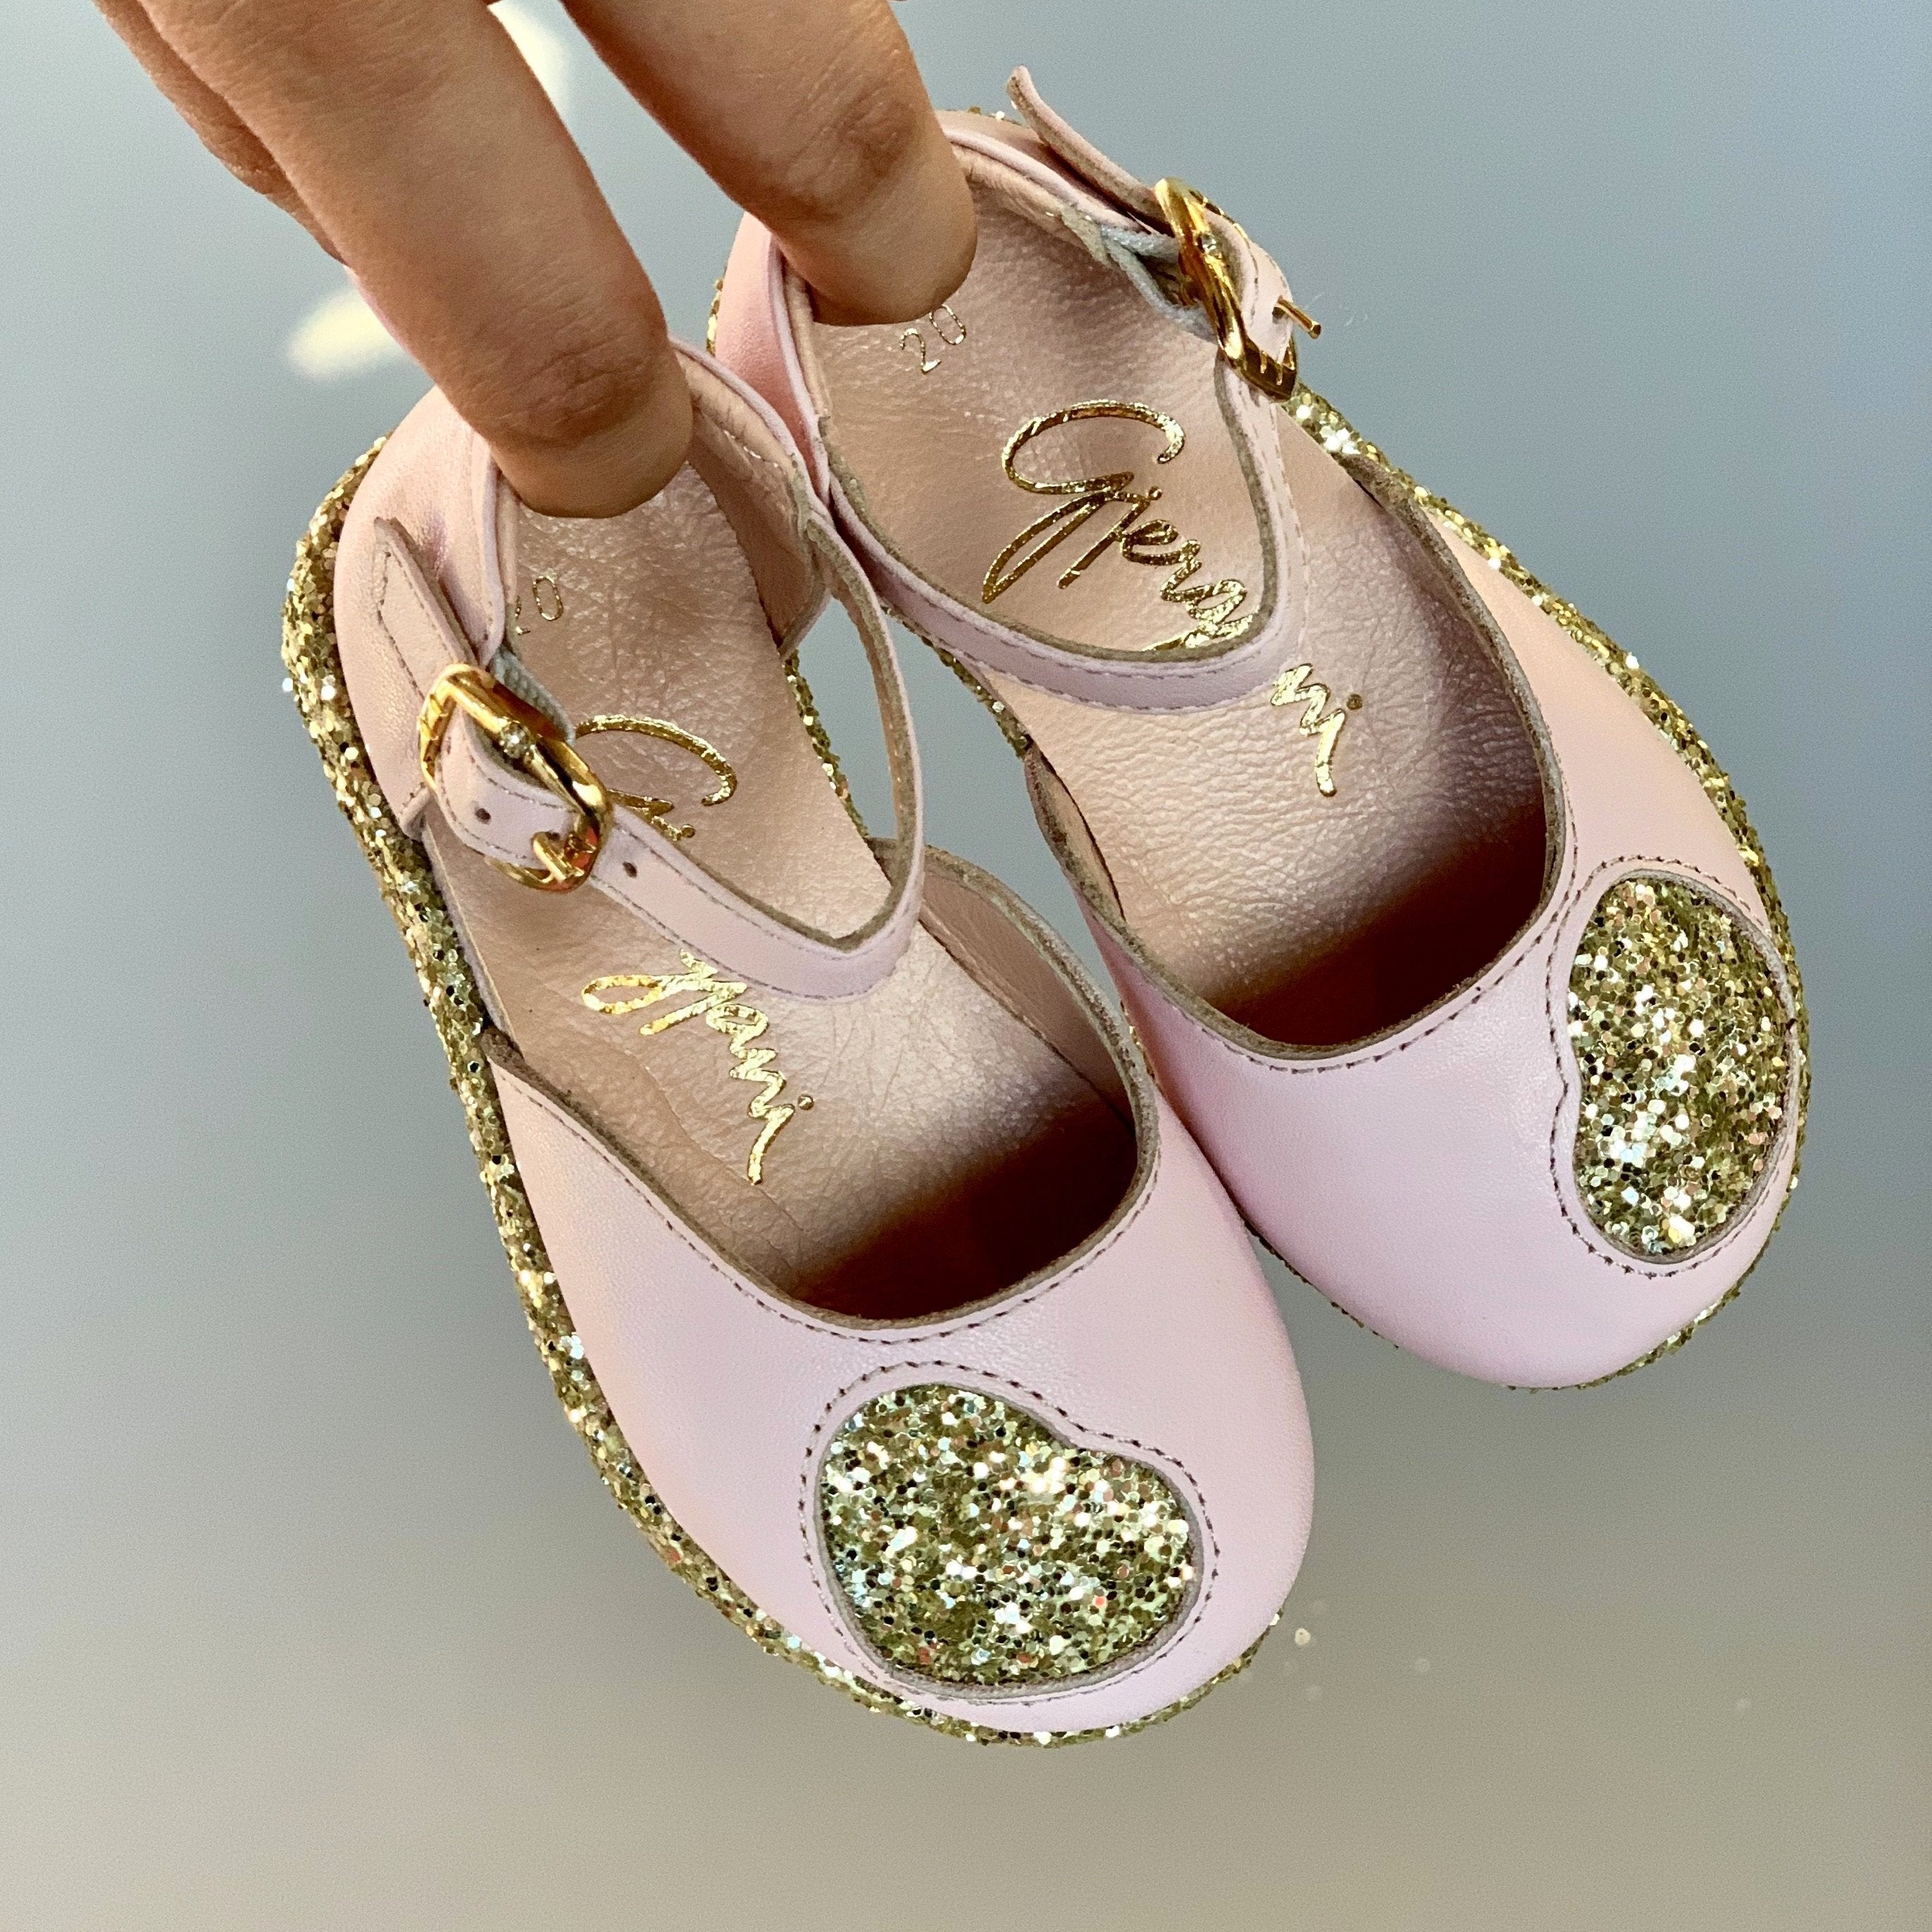 Kelli 13 (Pink & Gold) - Shoes - Itty Bitty Toes